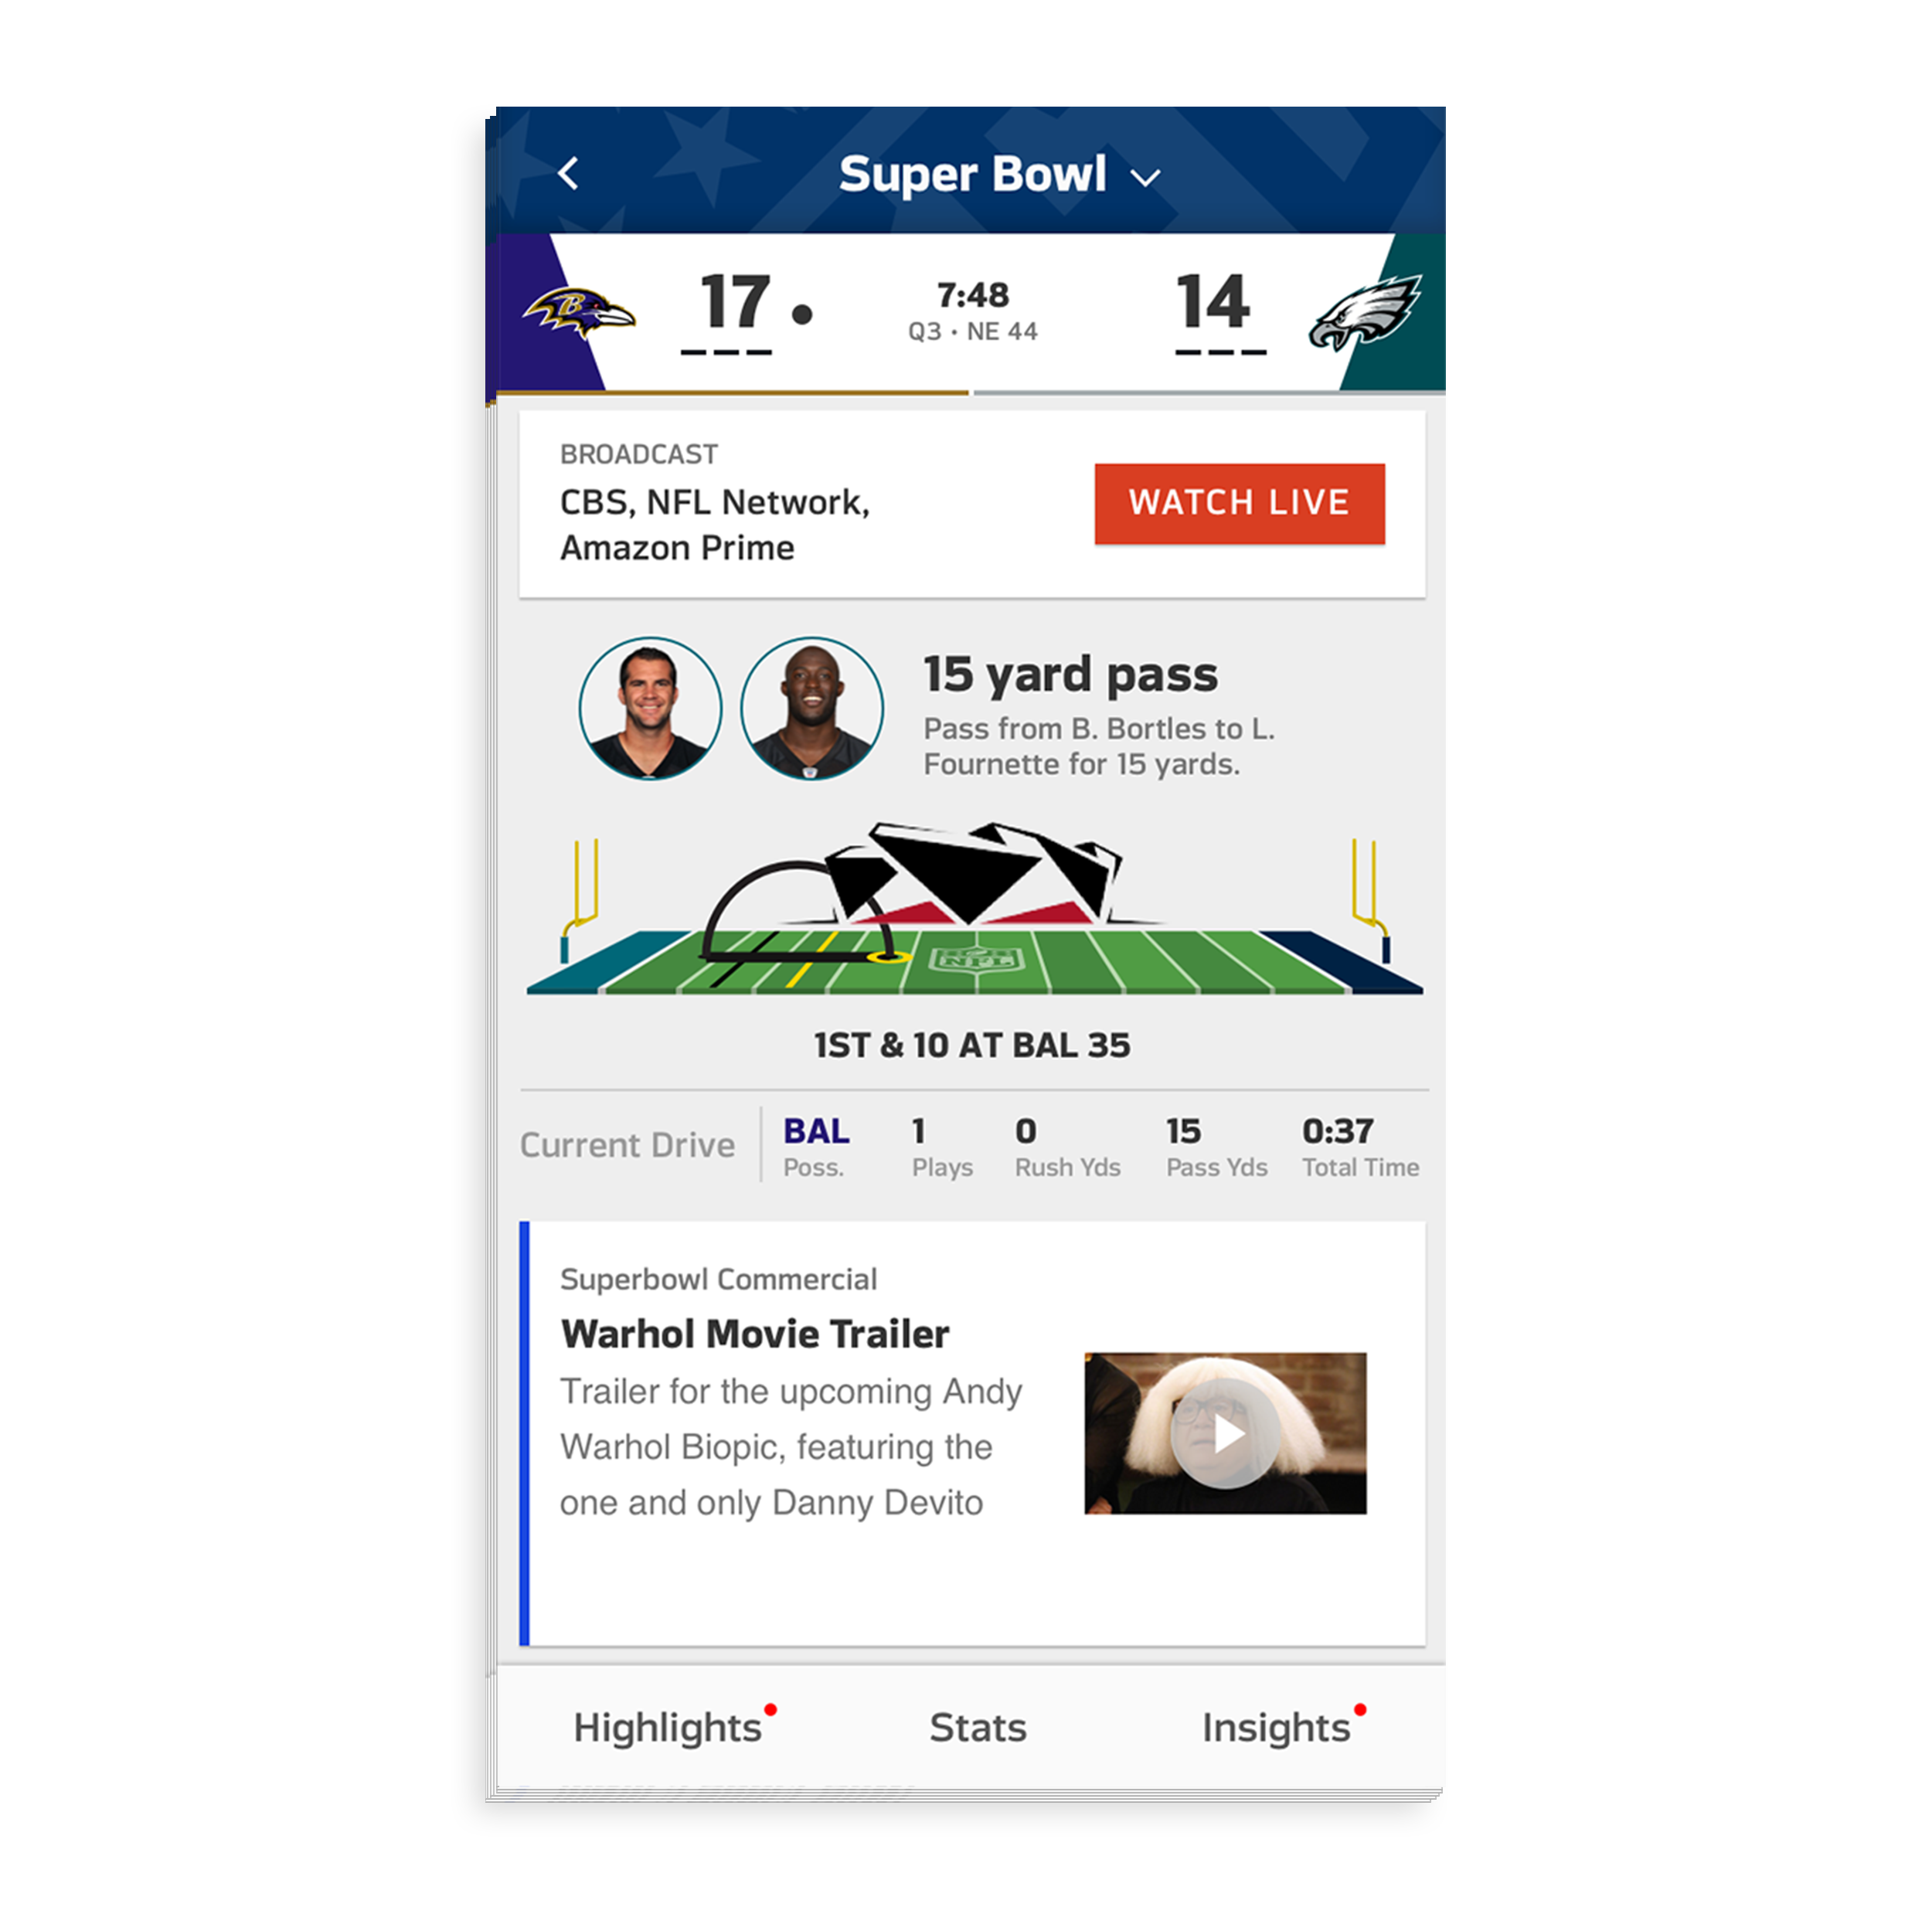 - Users can discover more about the matchup on the game's detail page. The top of this page will have an animated drive chart to provide users who can't watch the game live with a visual breakdown of what's happening on the field.